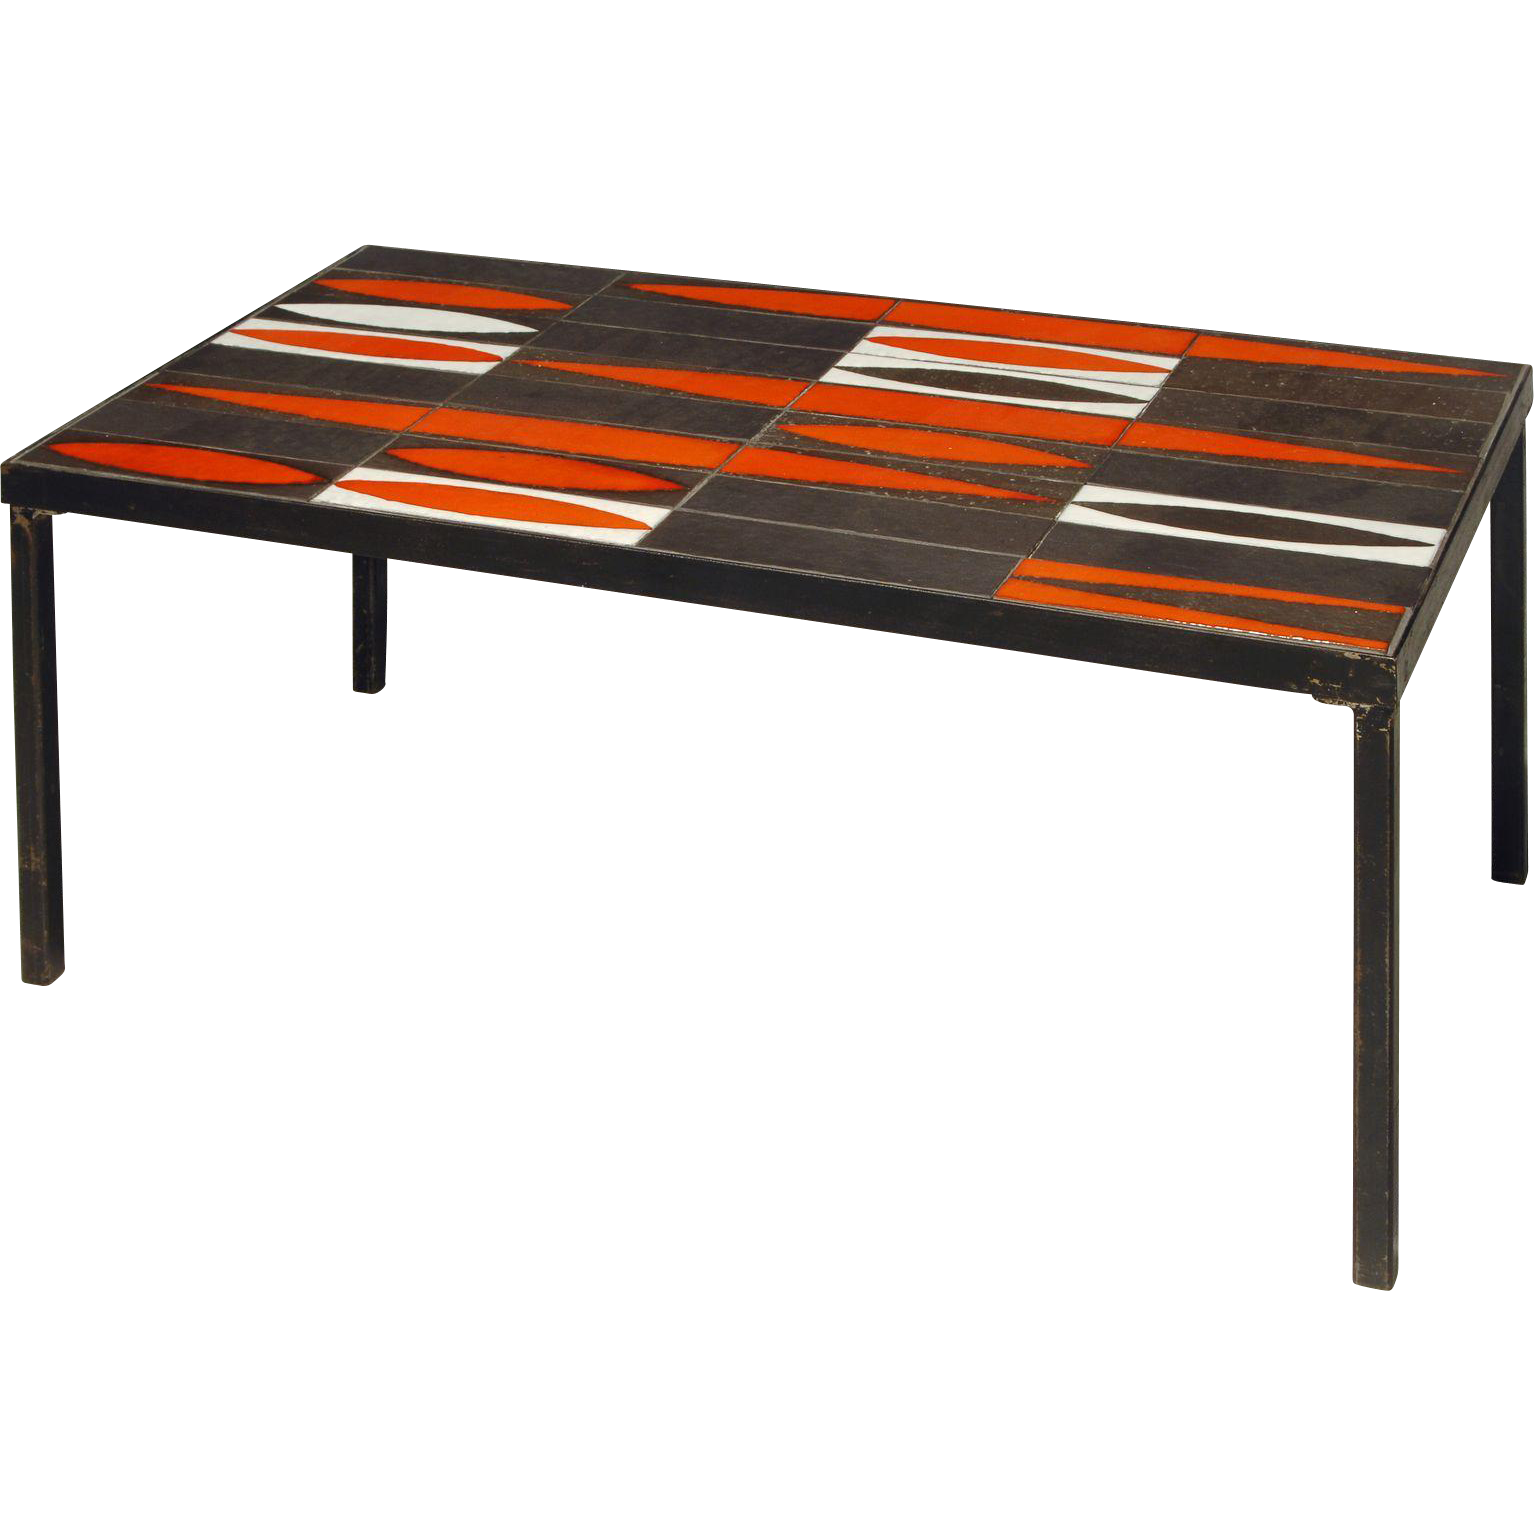 Mid-Century Modern Coffee Table By Roger Capron South Of